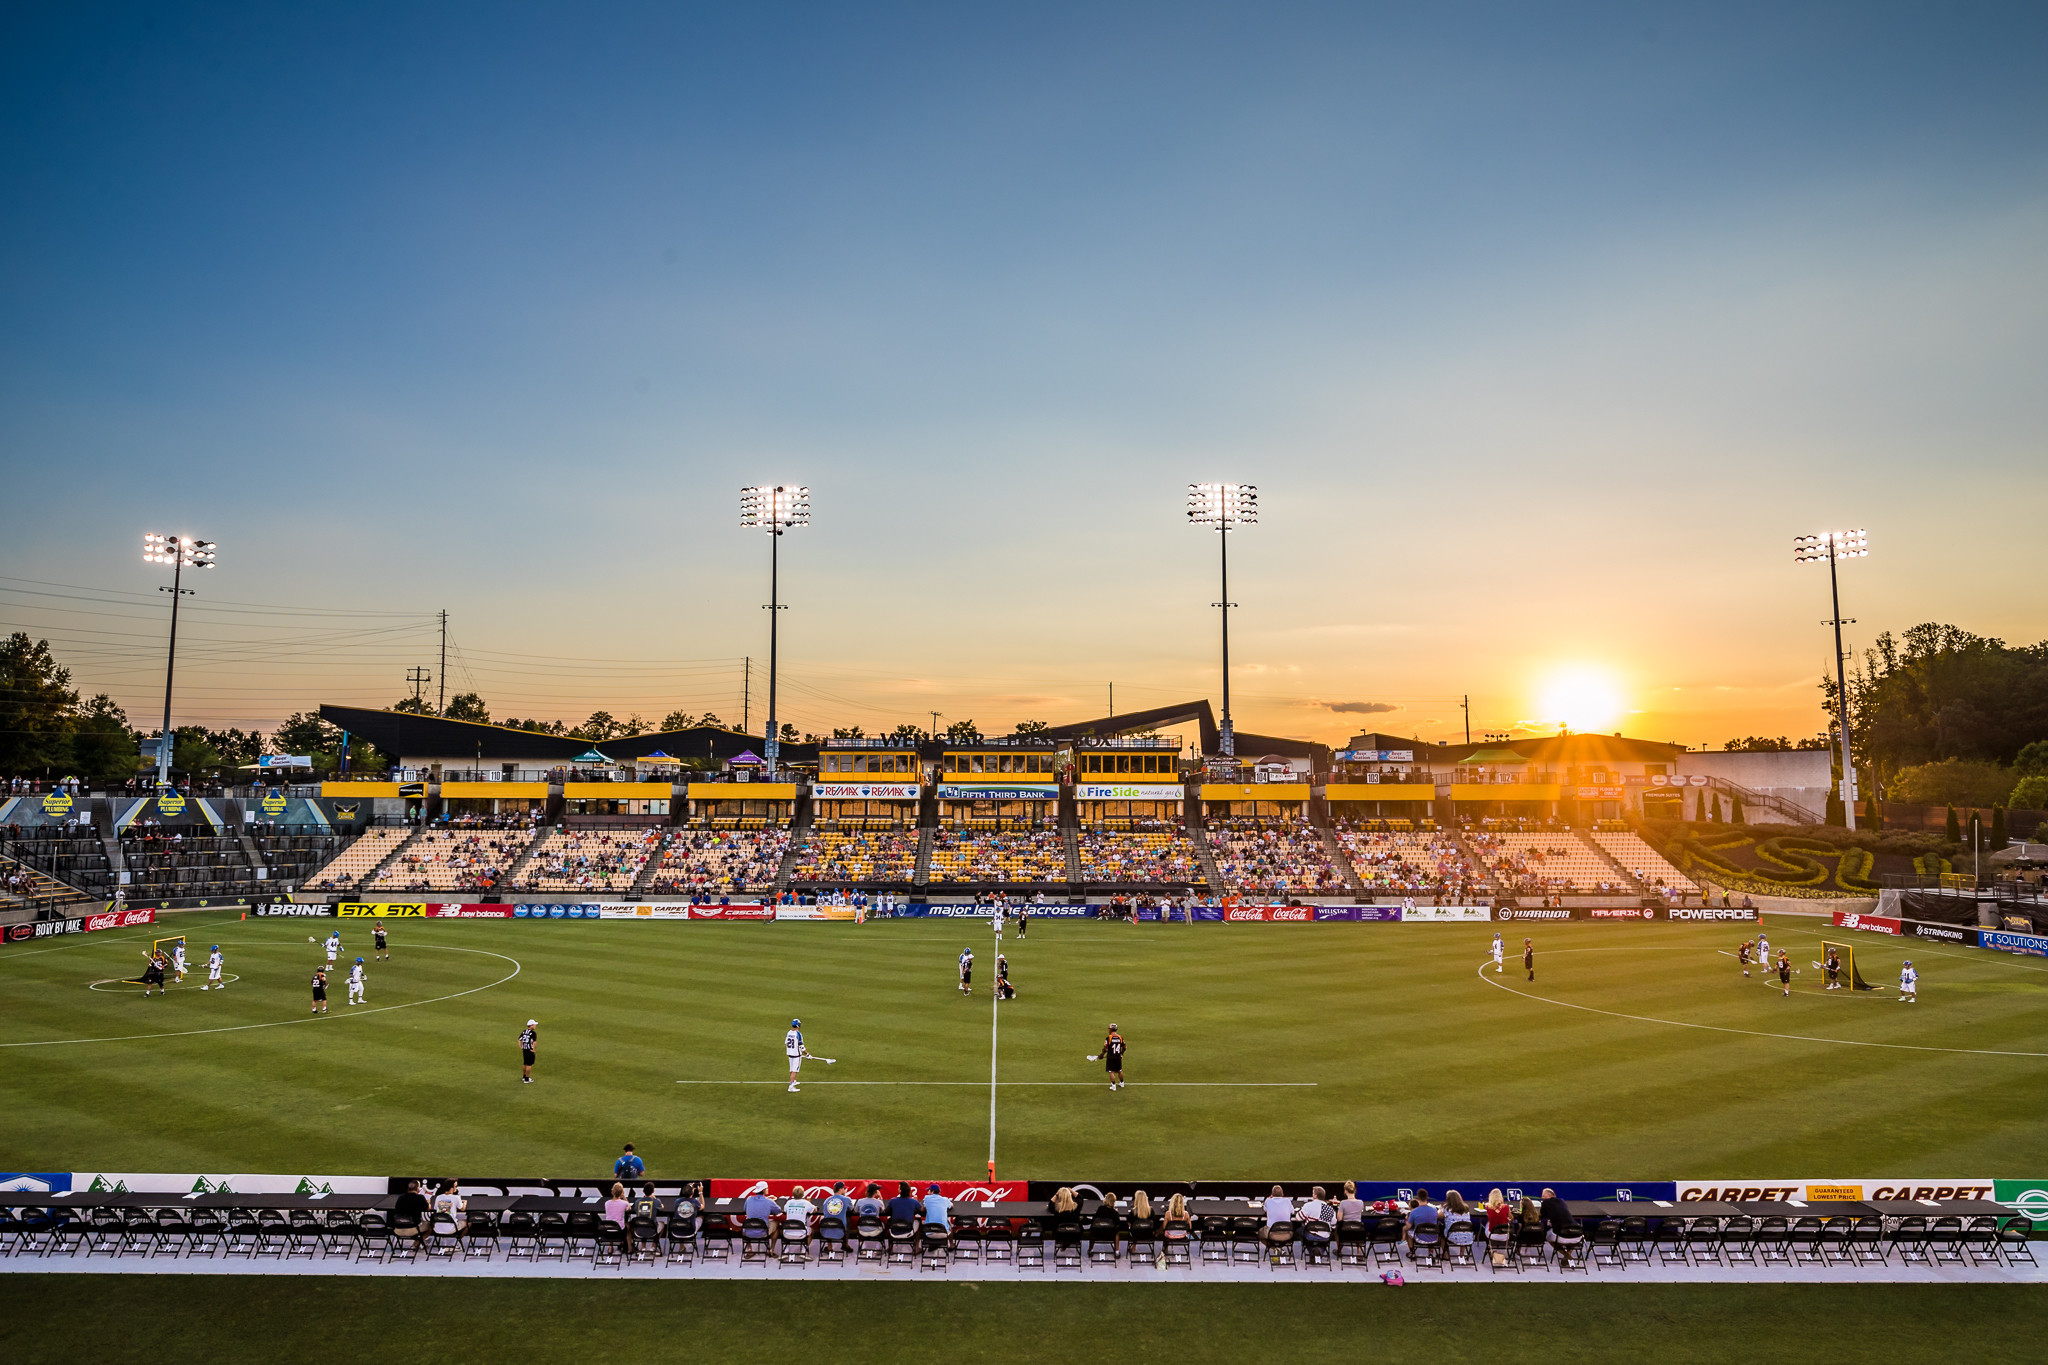 bayhawks want to build stadium on crownsville property